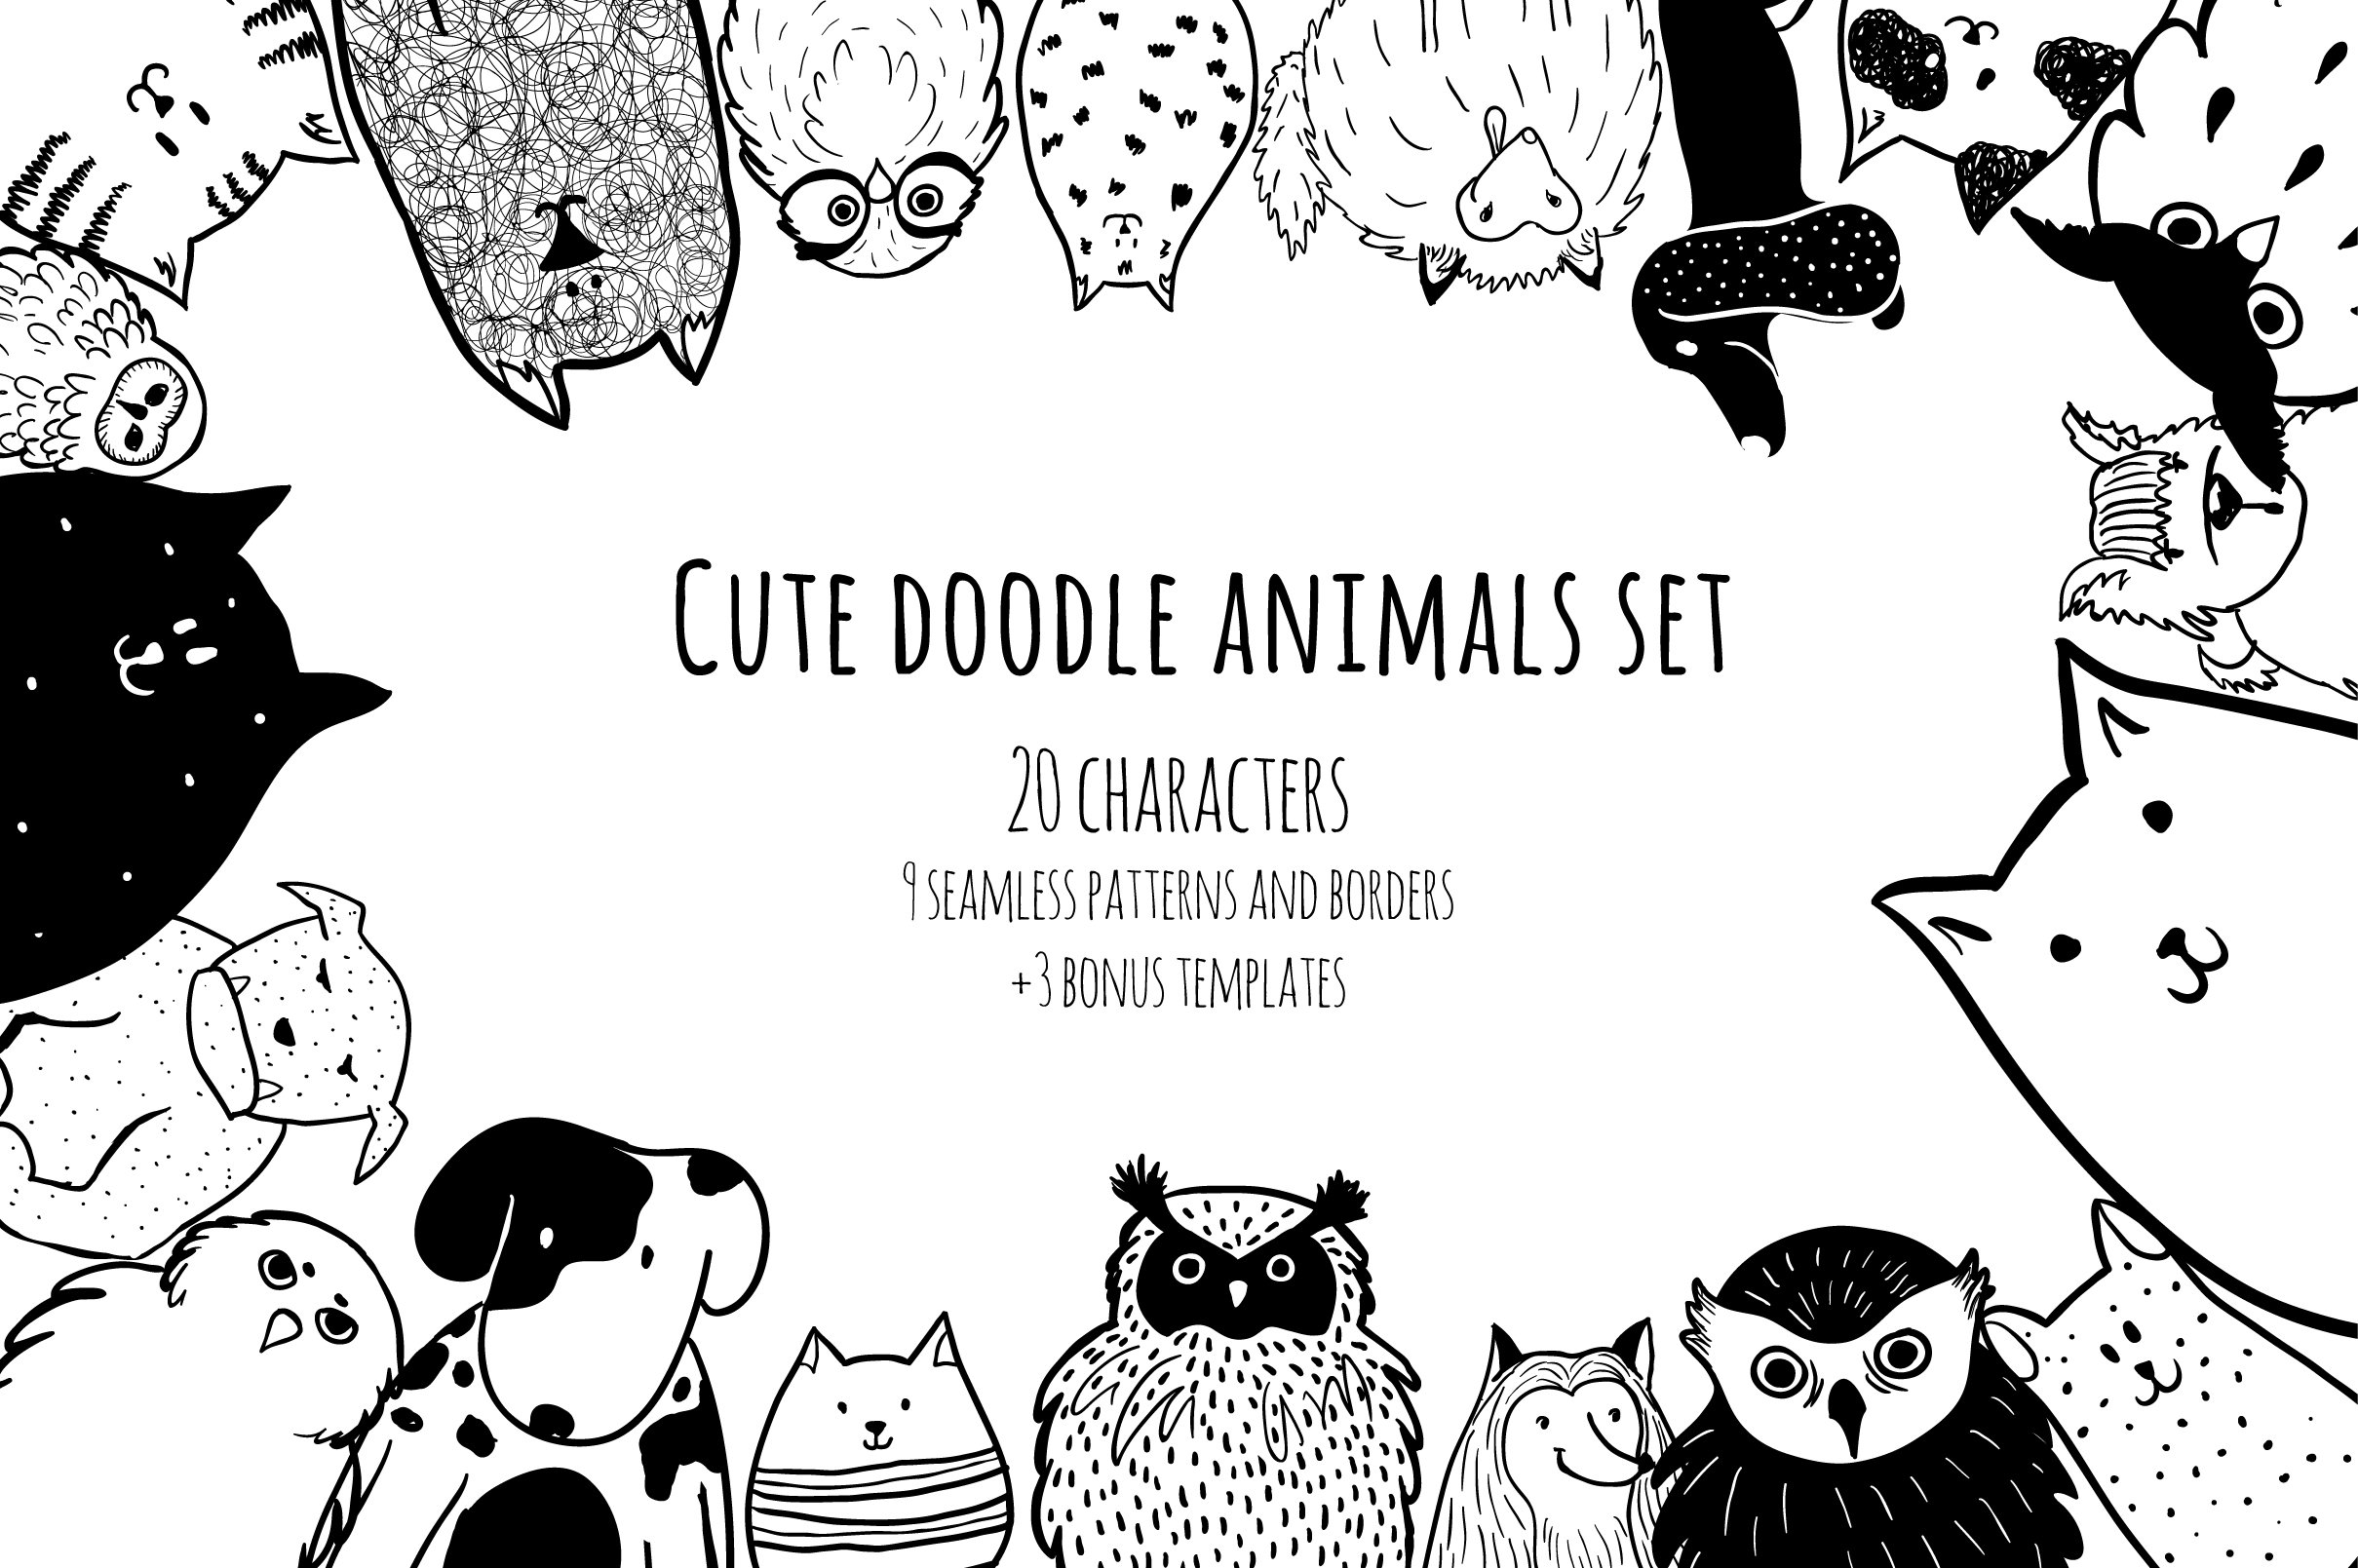 Cute doodle animals set ~ Illustrations ~ Creative Market